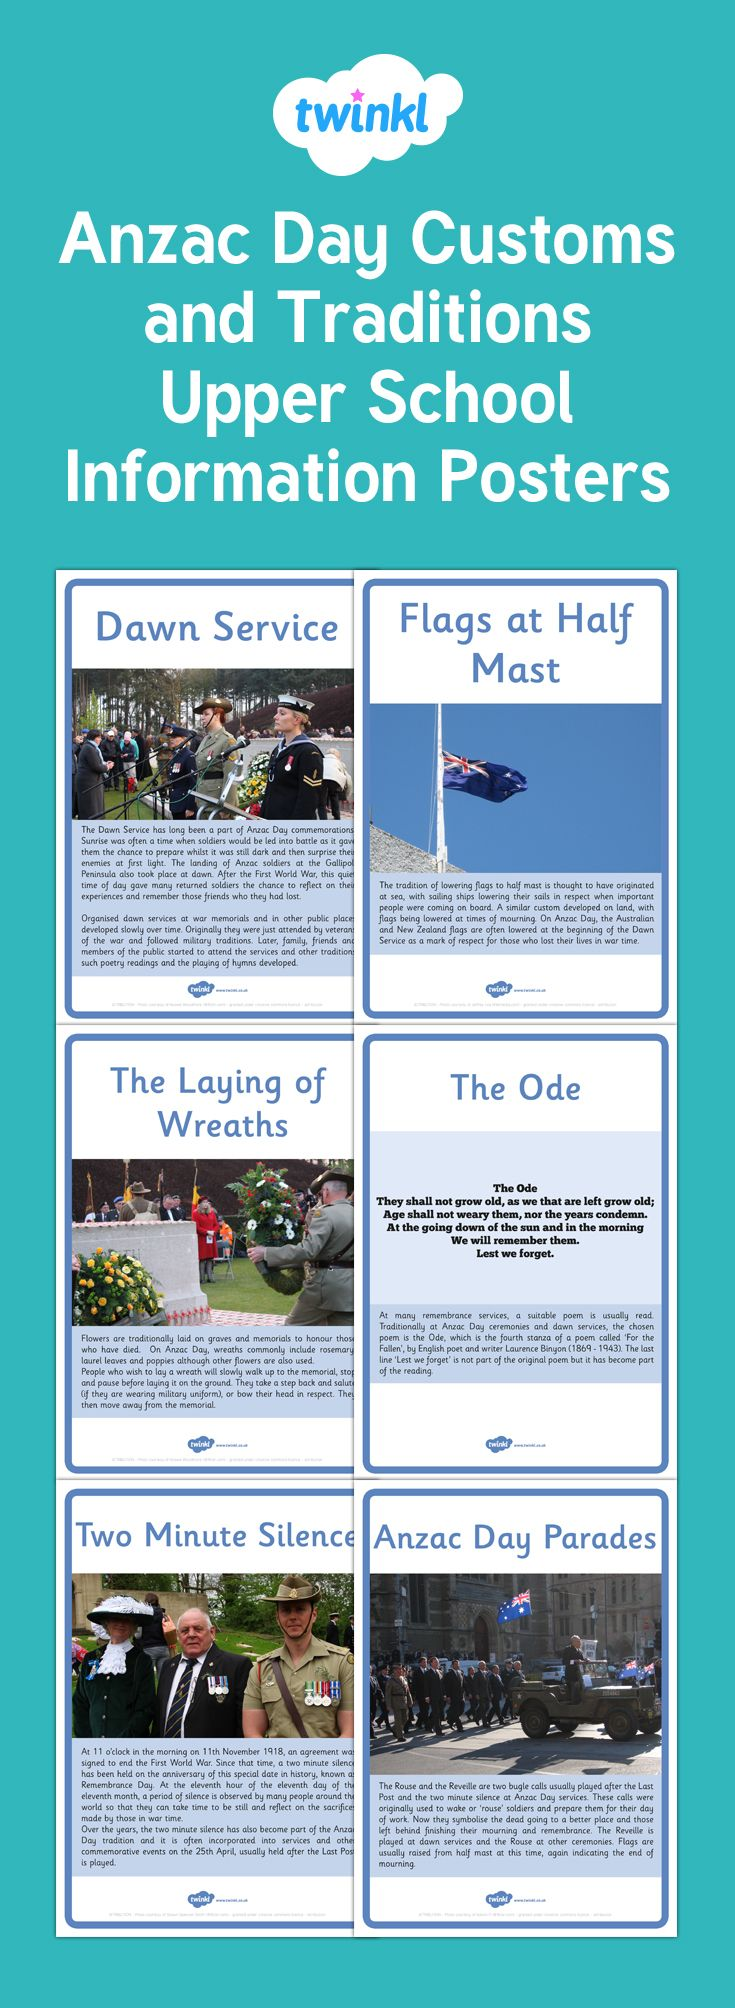 A great set of information posters detailing the customs and traditions of ANZAC Day. Display in the classroom or use for reading comprehension or research activities.